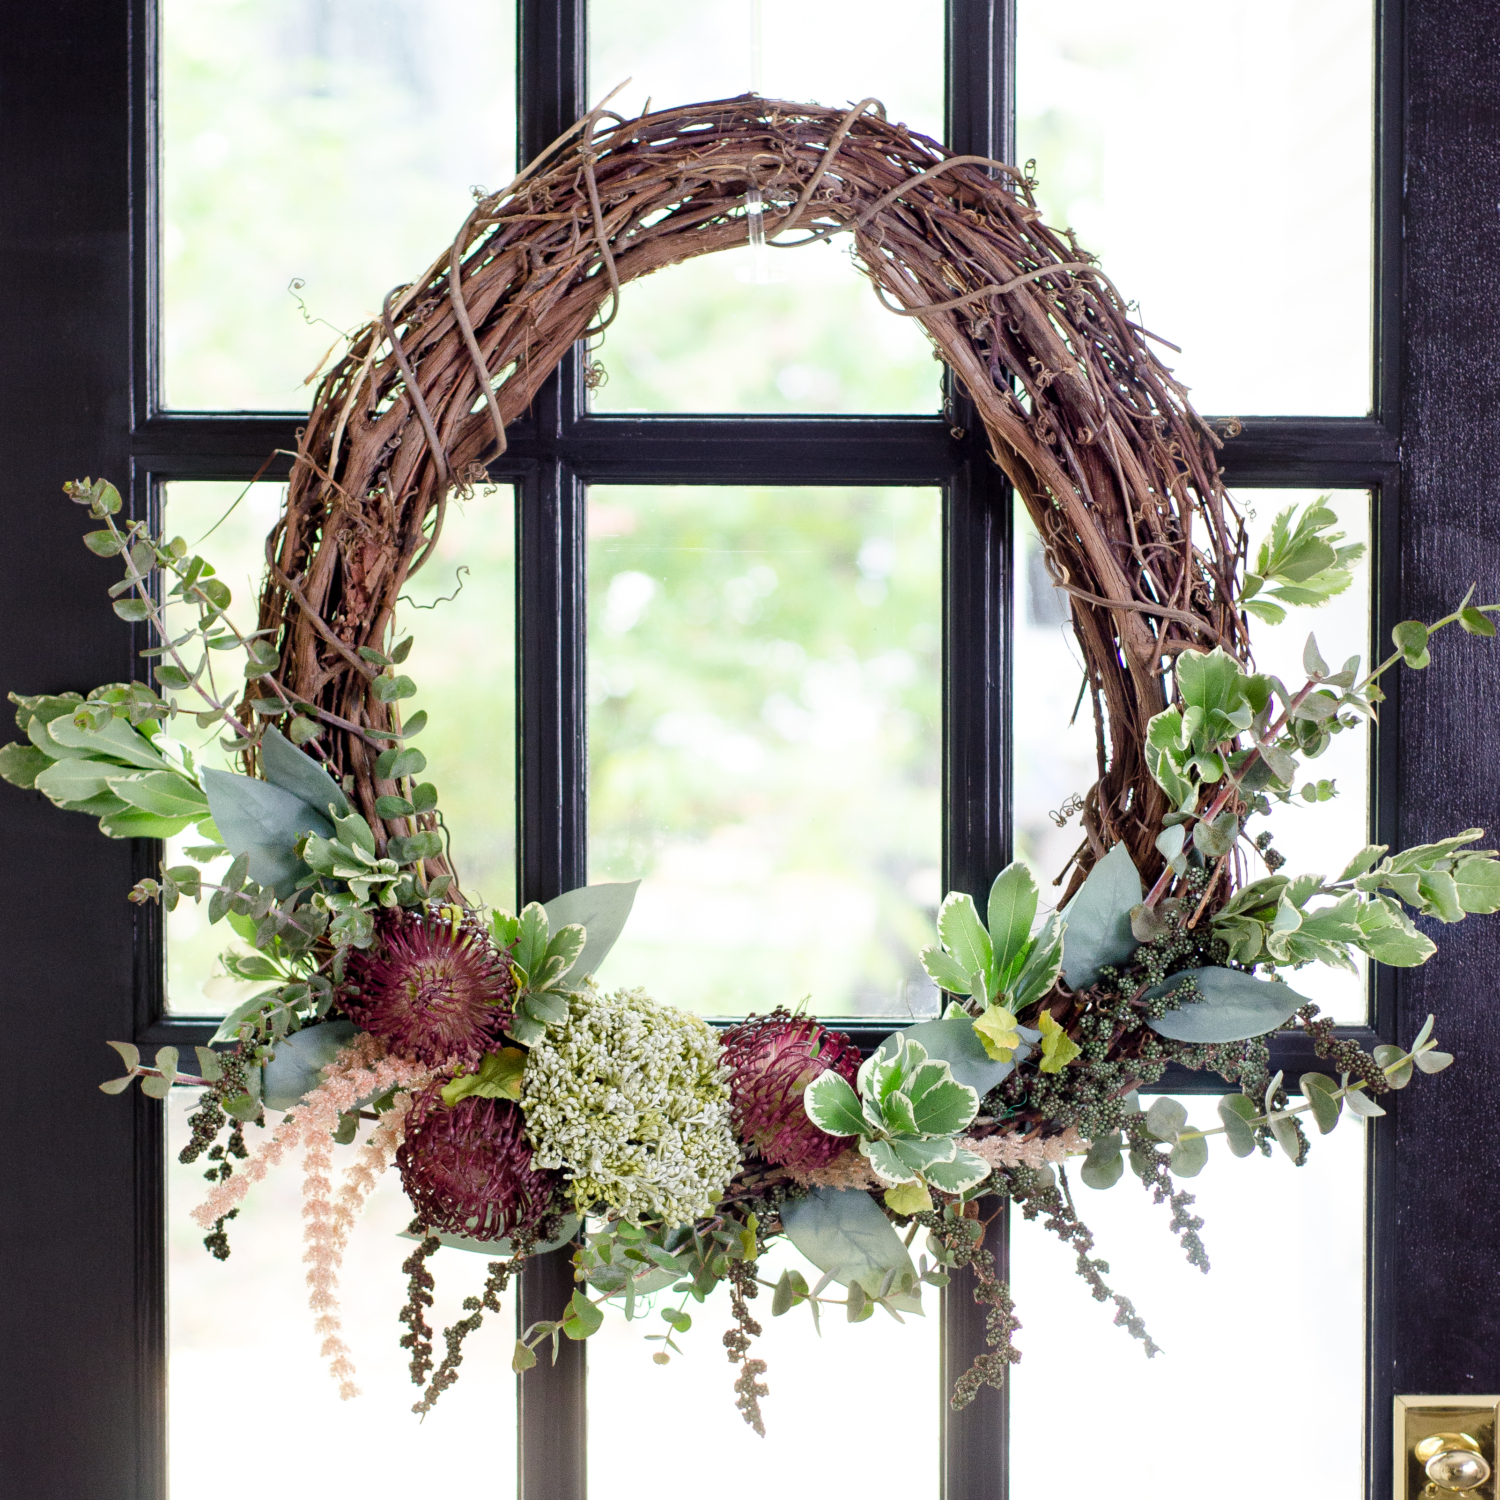 Easy, step-by-step instructions for making a DIY fall wreath with a grapevine base. Budget friendly and done in less than 30 minutes!